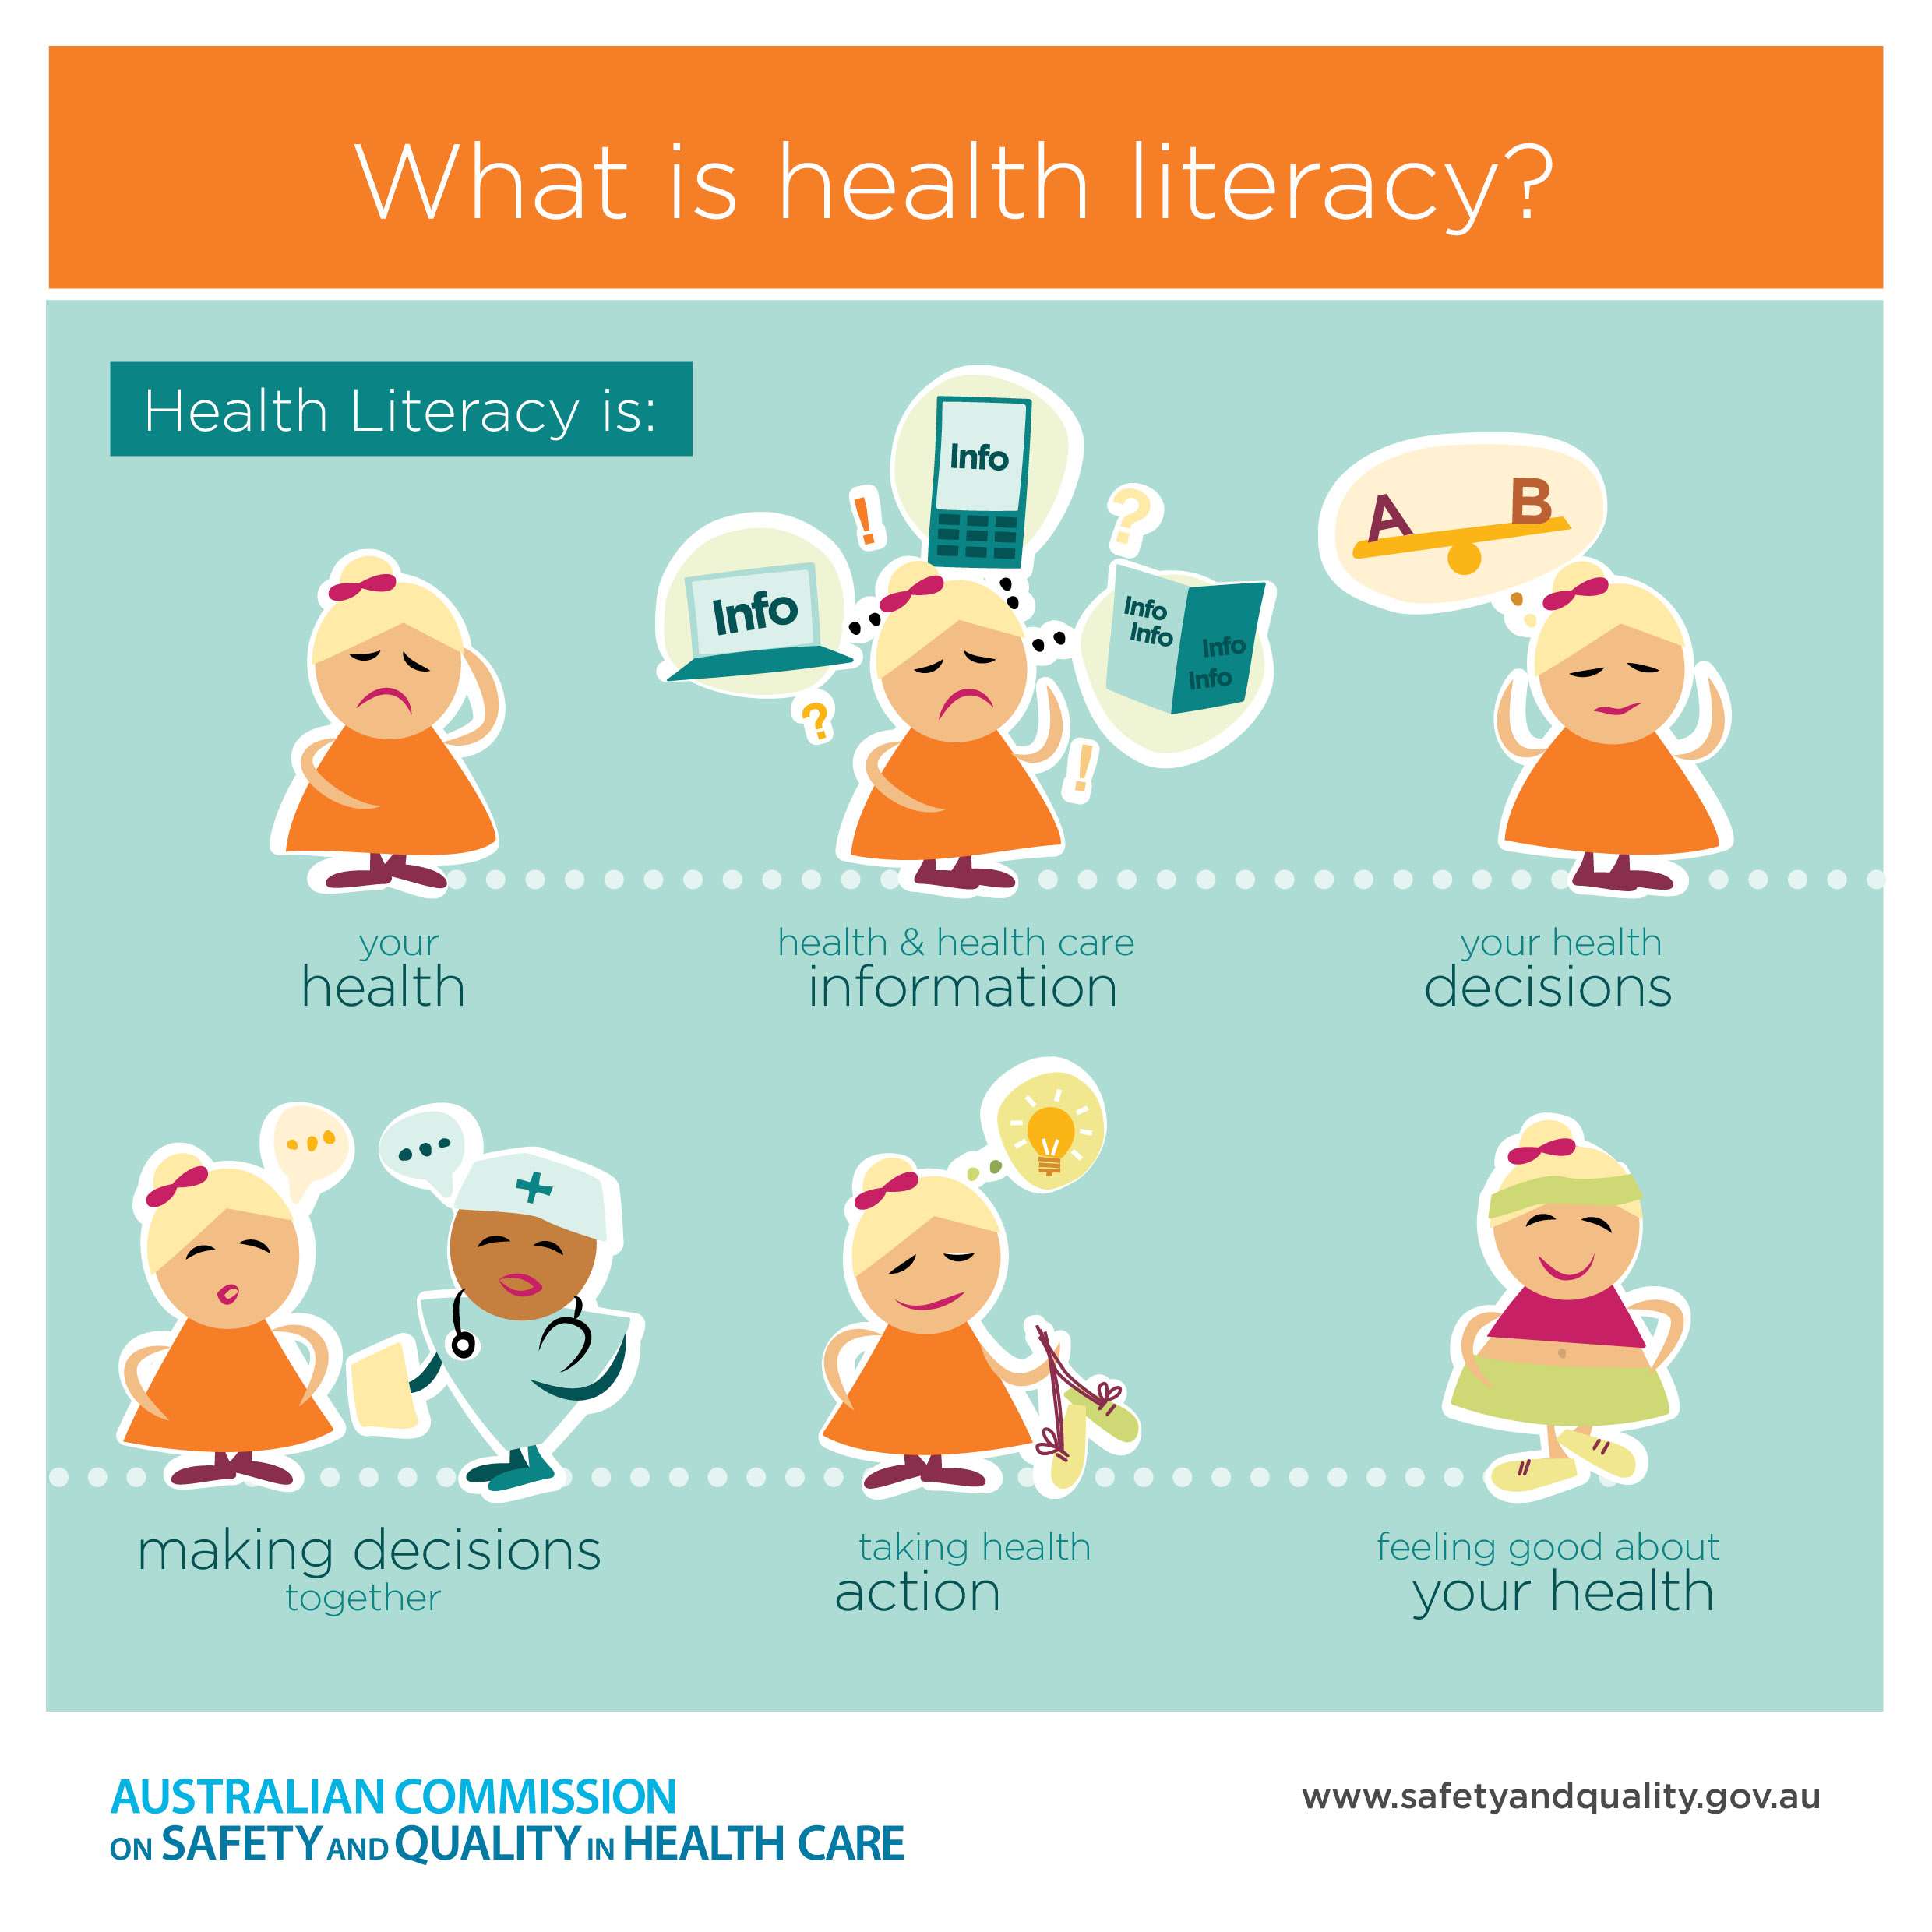 Infographic-What-is-health-literacy.jpg